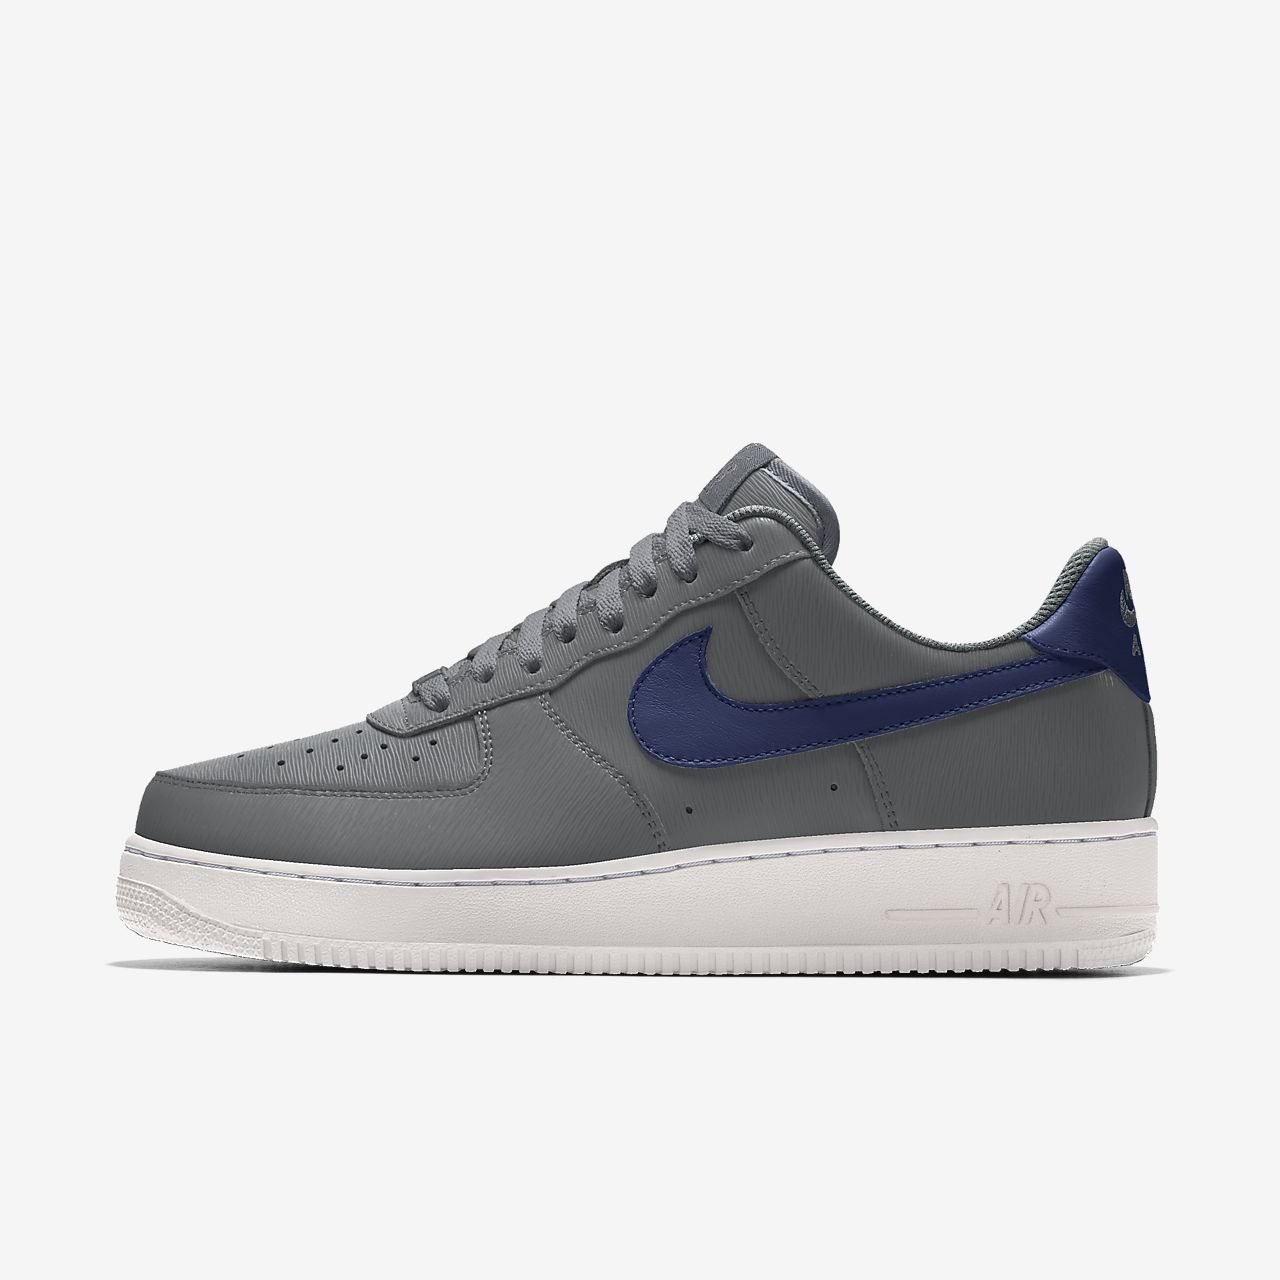 Nike Air Force 1 Low Grey Suede